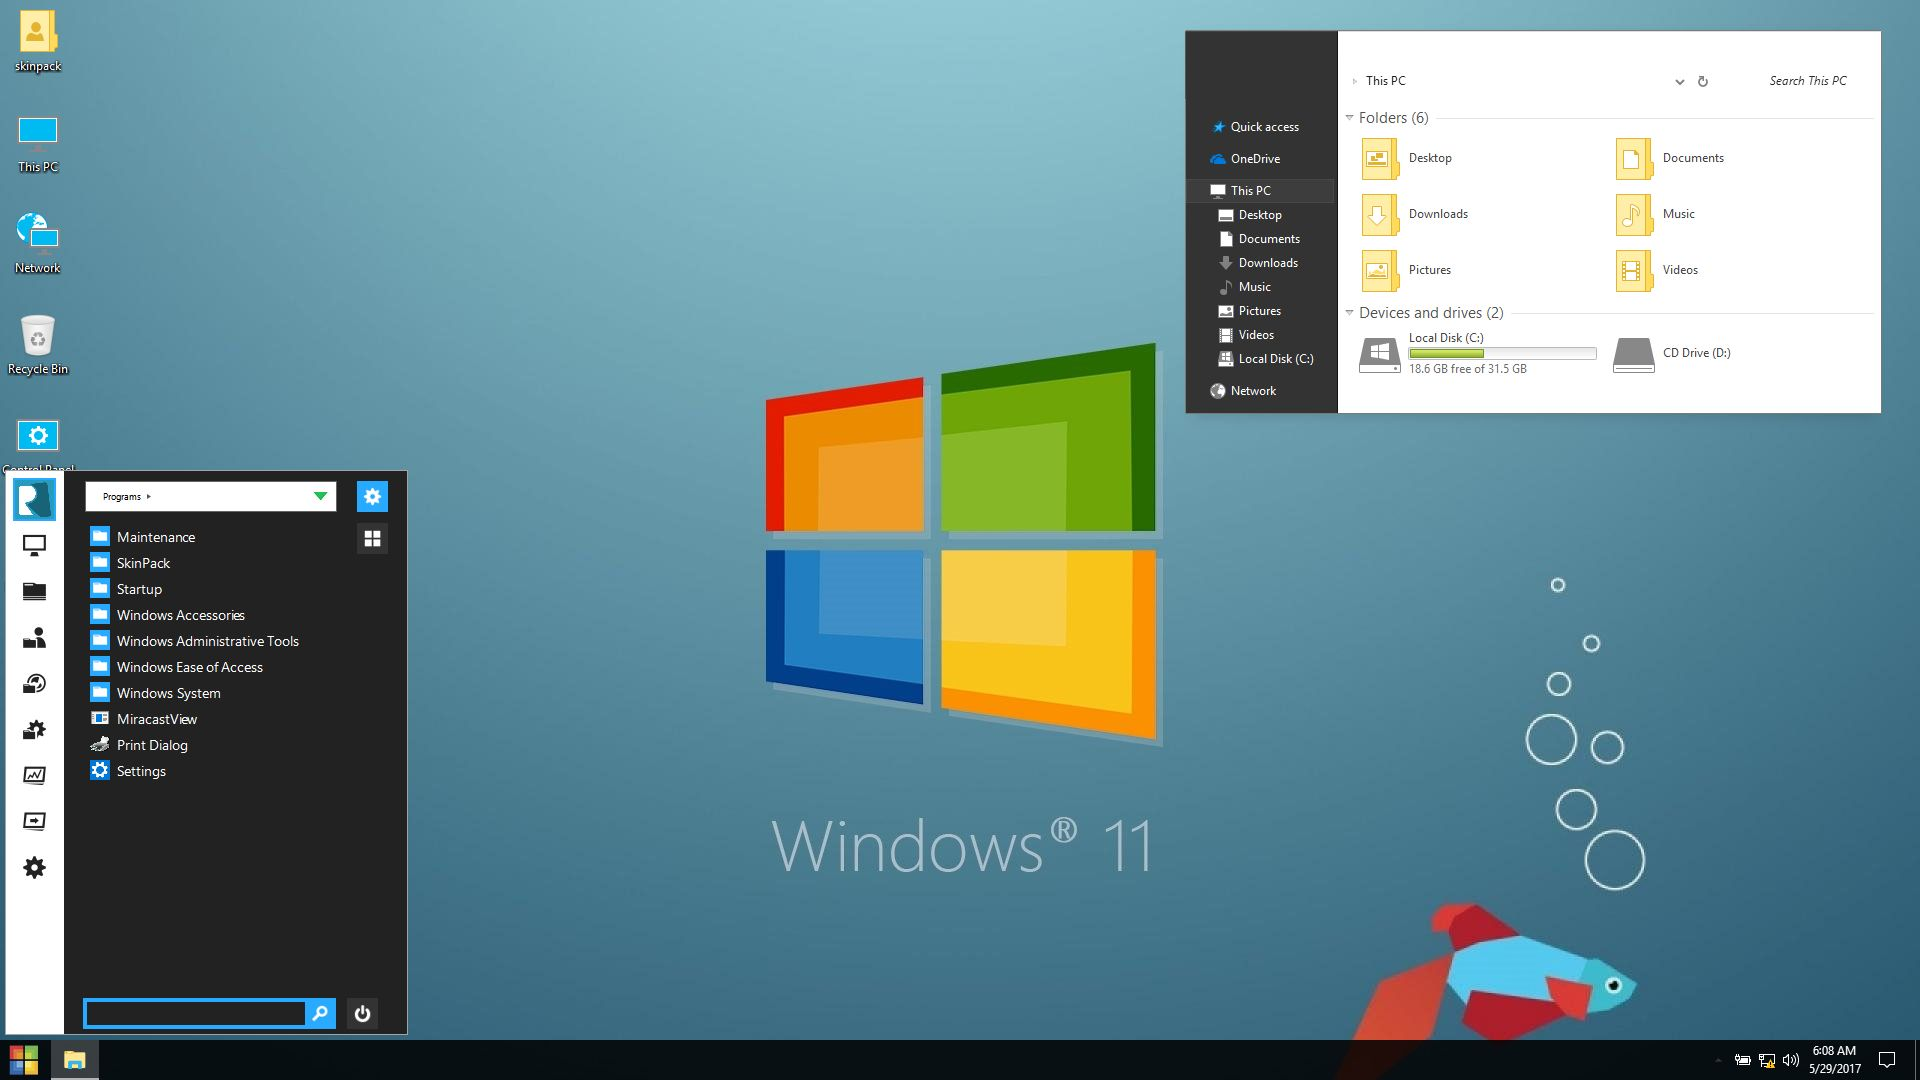 Windows 11 Skinpack For Win7 10 19h1 19h2 20h1 Skin Pack Theme